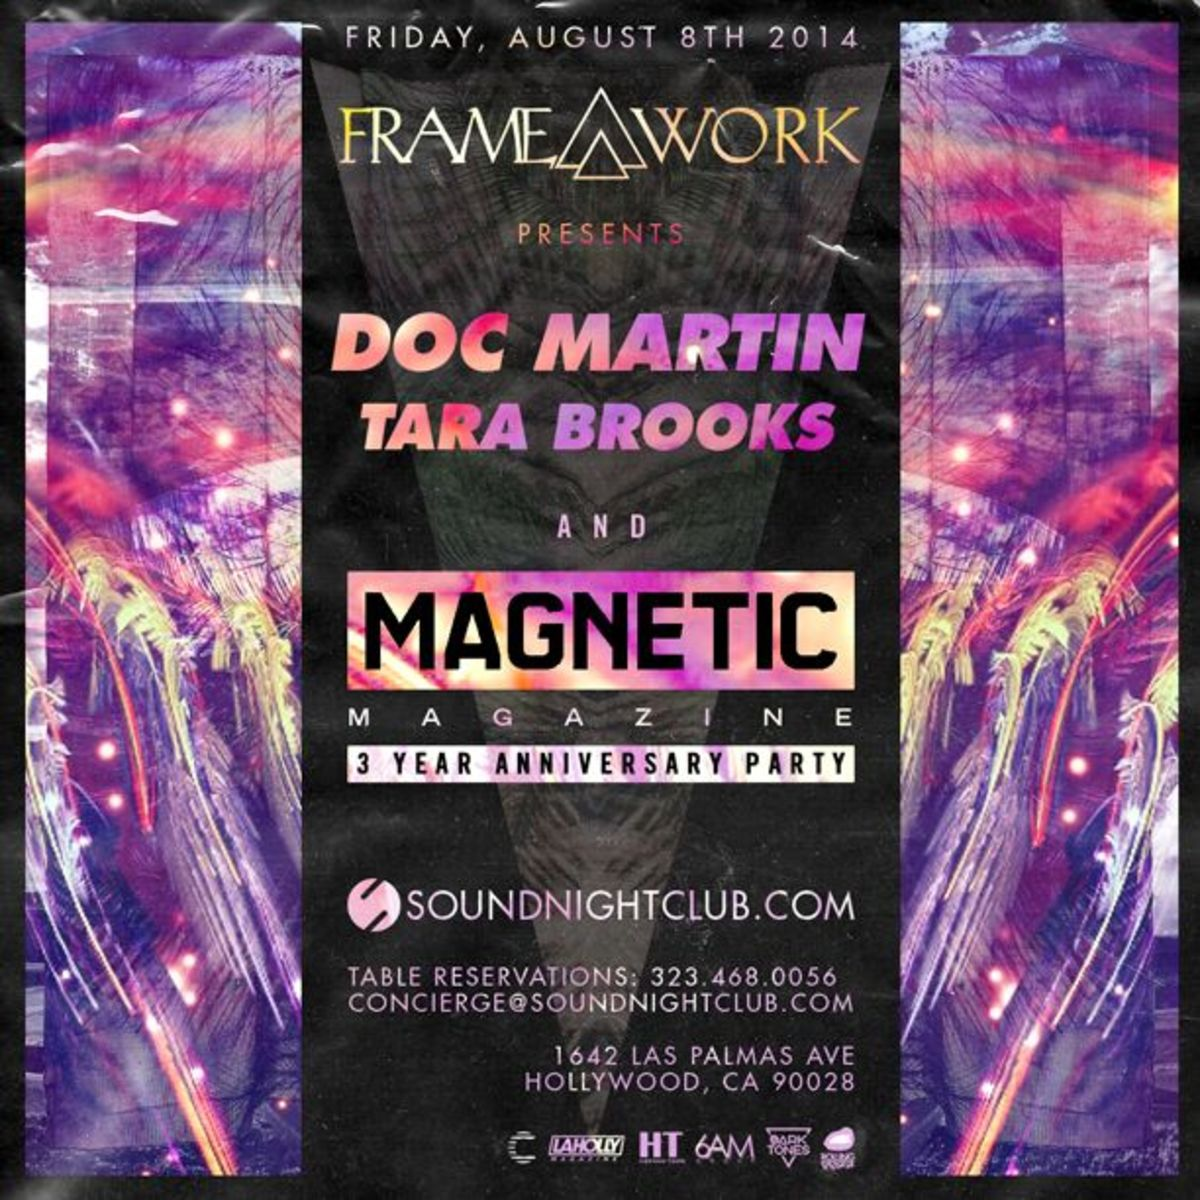 Celebrate Magnetic's 3 Year Anniversary Party Tonight At Sound Hollywood